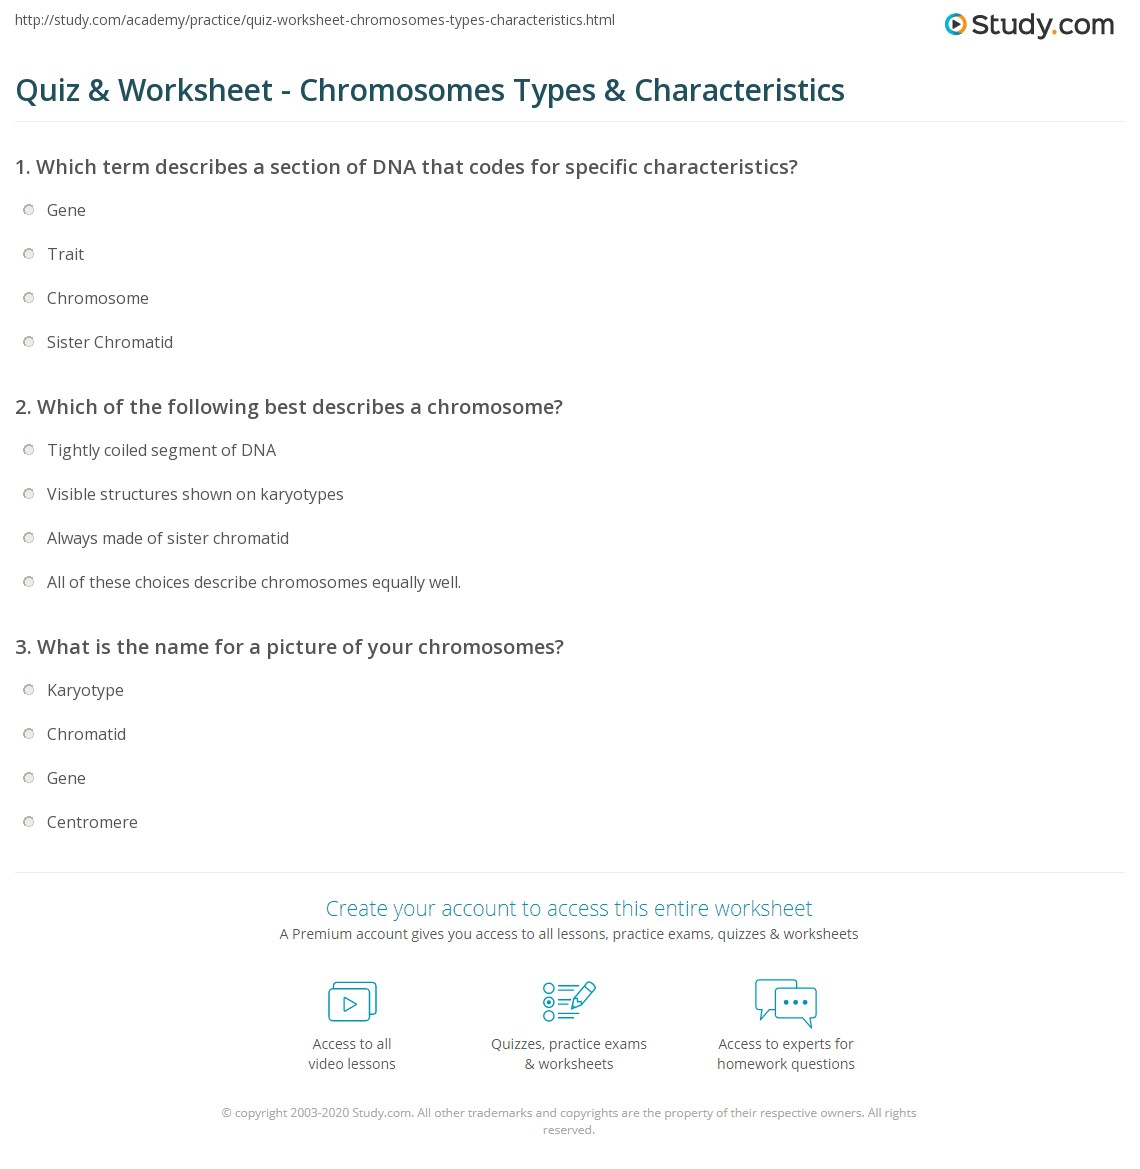 Worksheets Number Of Chromosomes Worksheet quiz worksheet chromosomes types characteristics study com print what are definition function structure worksheet